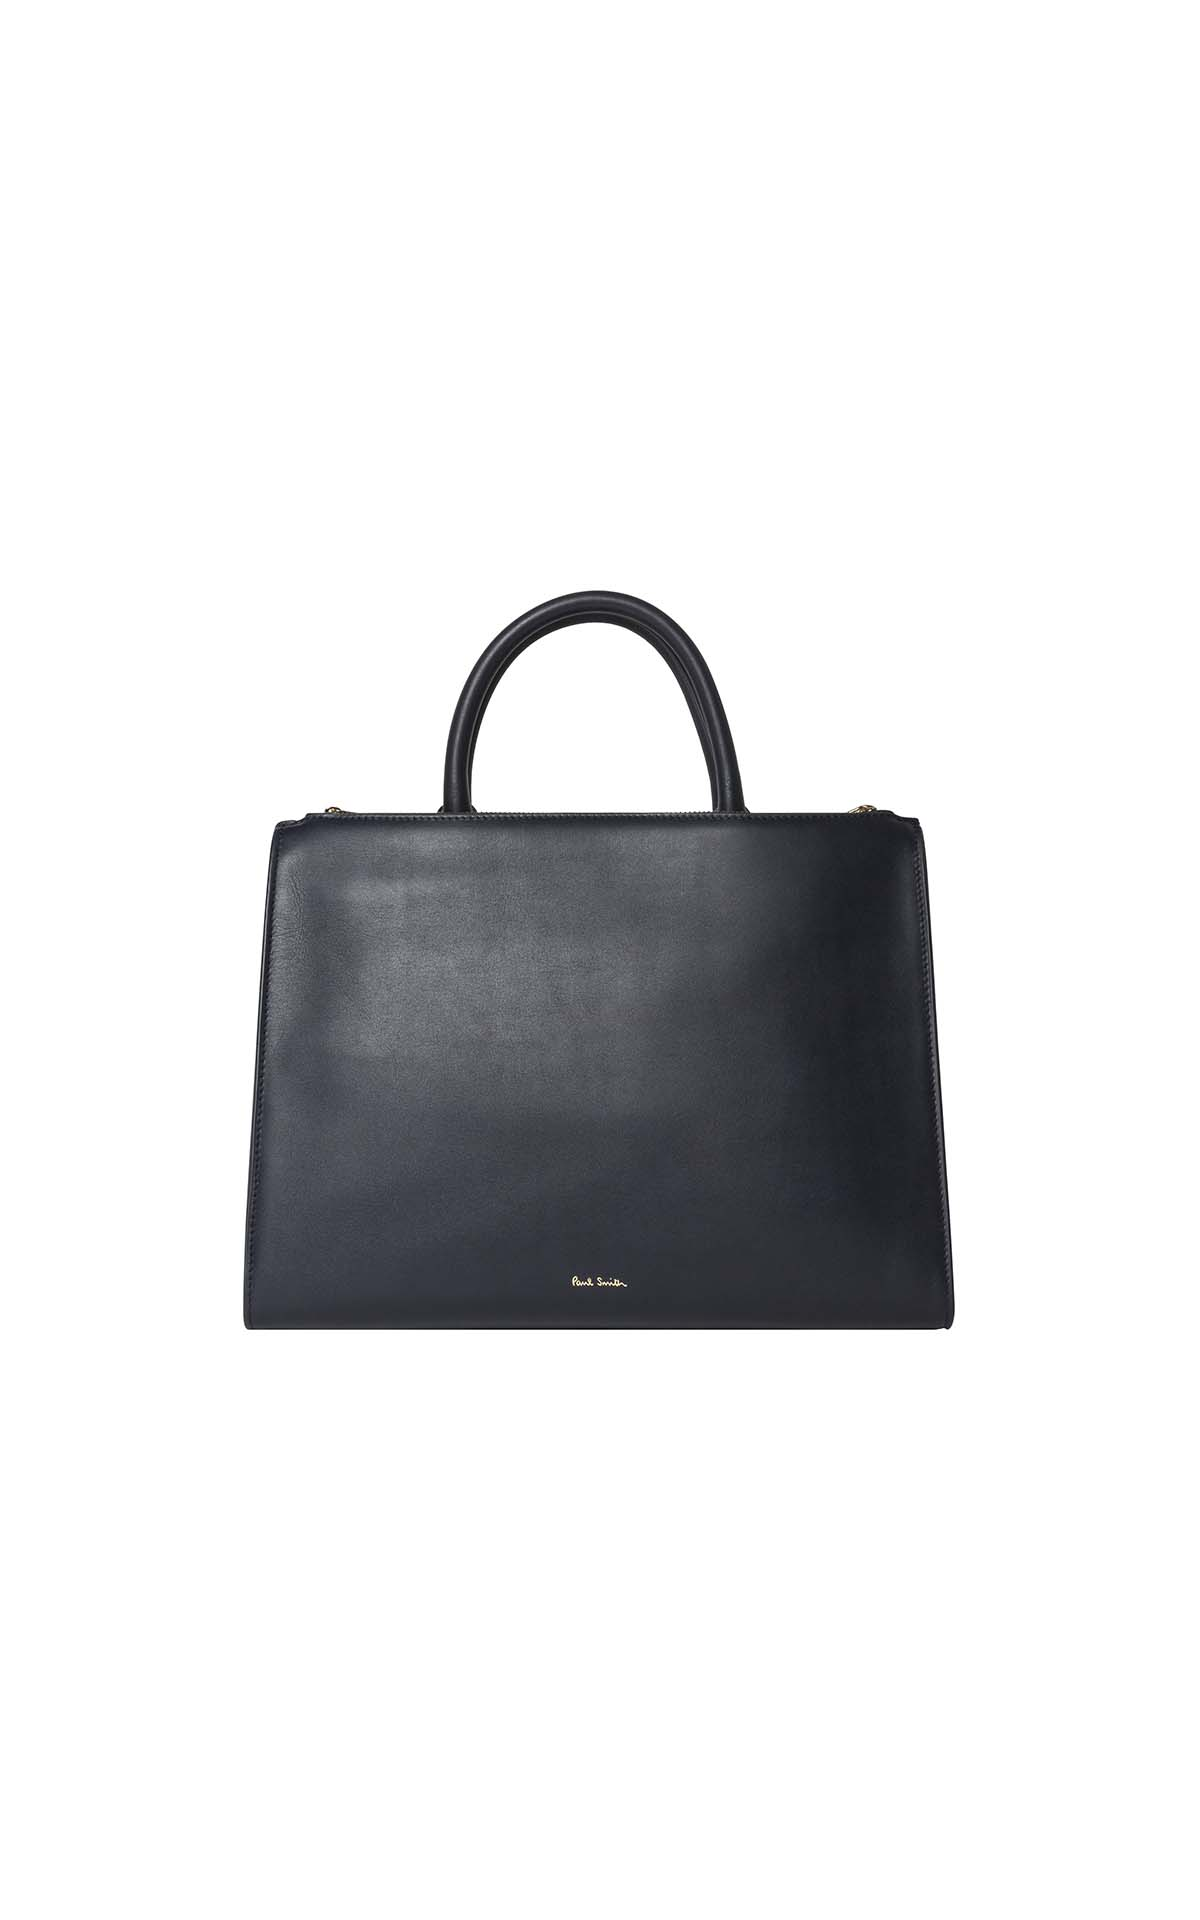 Paul Smith Women's Navy Bag at The Bicester Village Shopping Collection